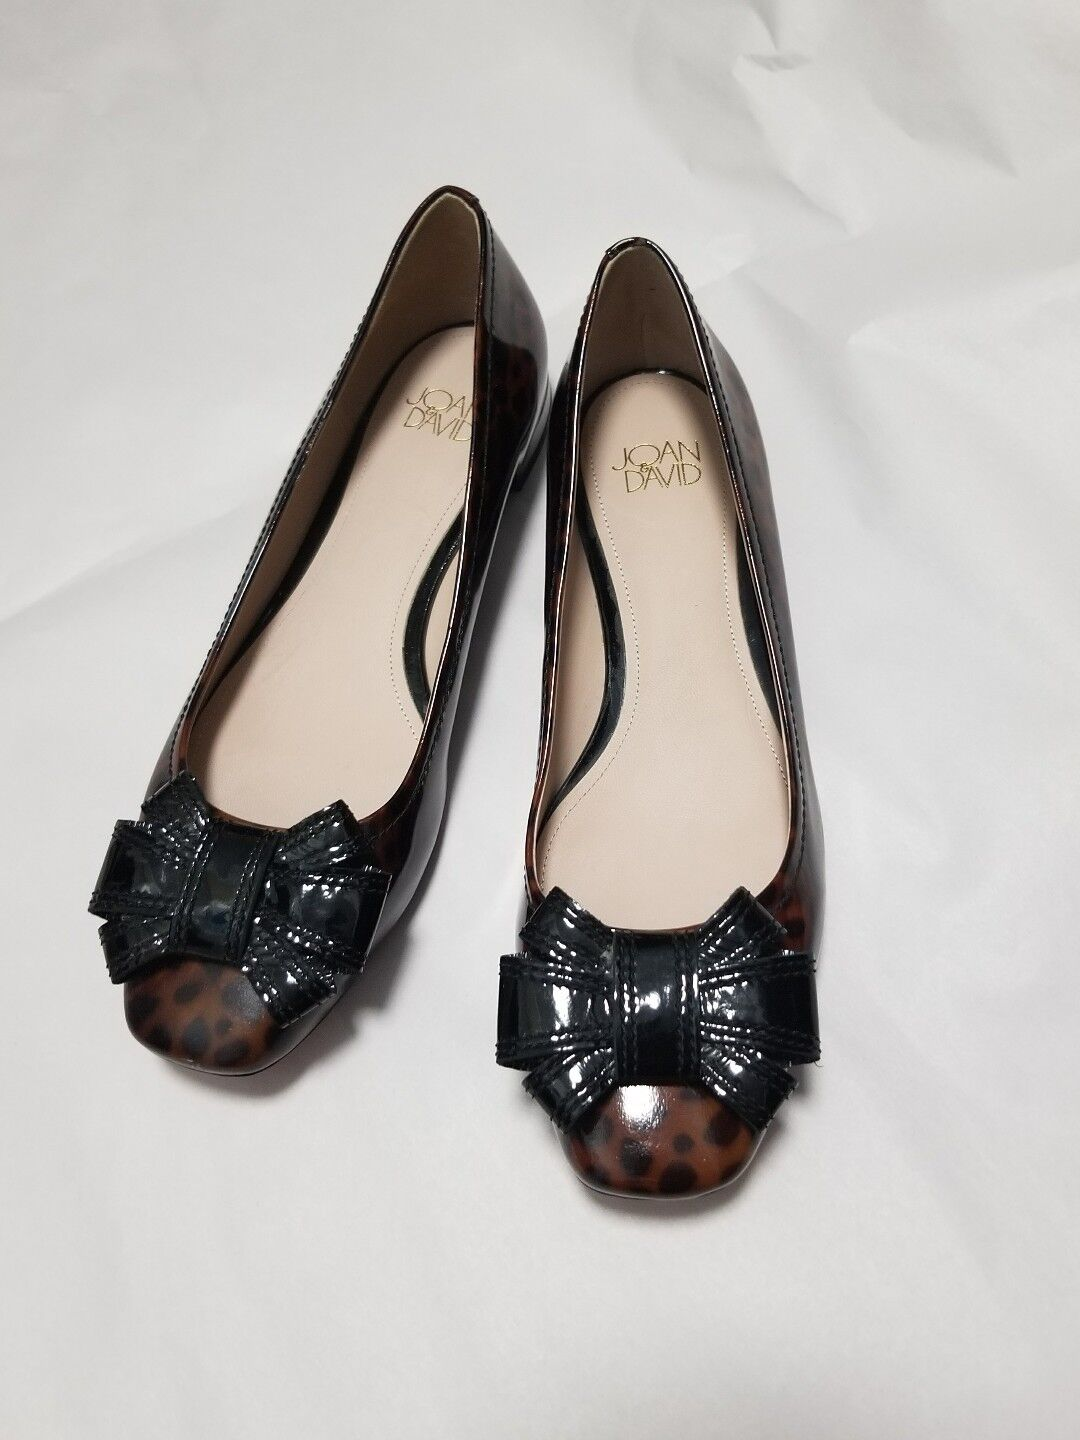 Joan & David Patent Leather Bow Flats Size 9